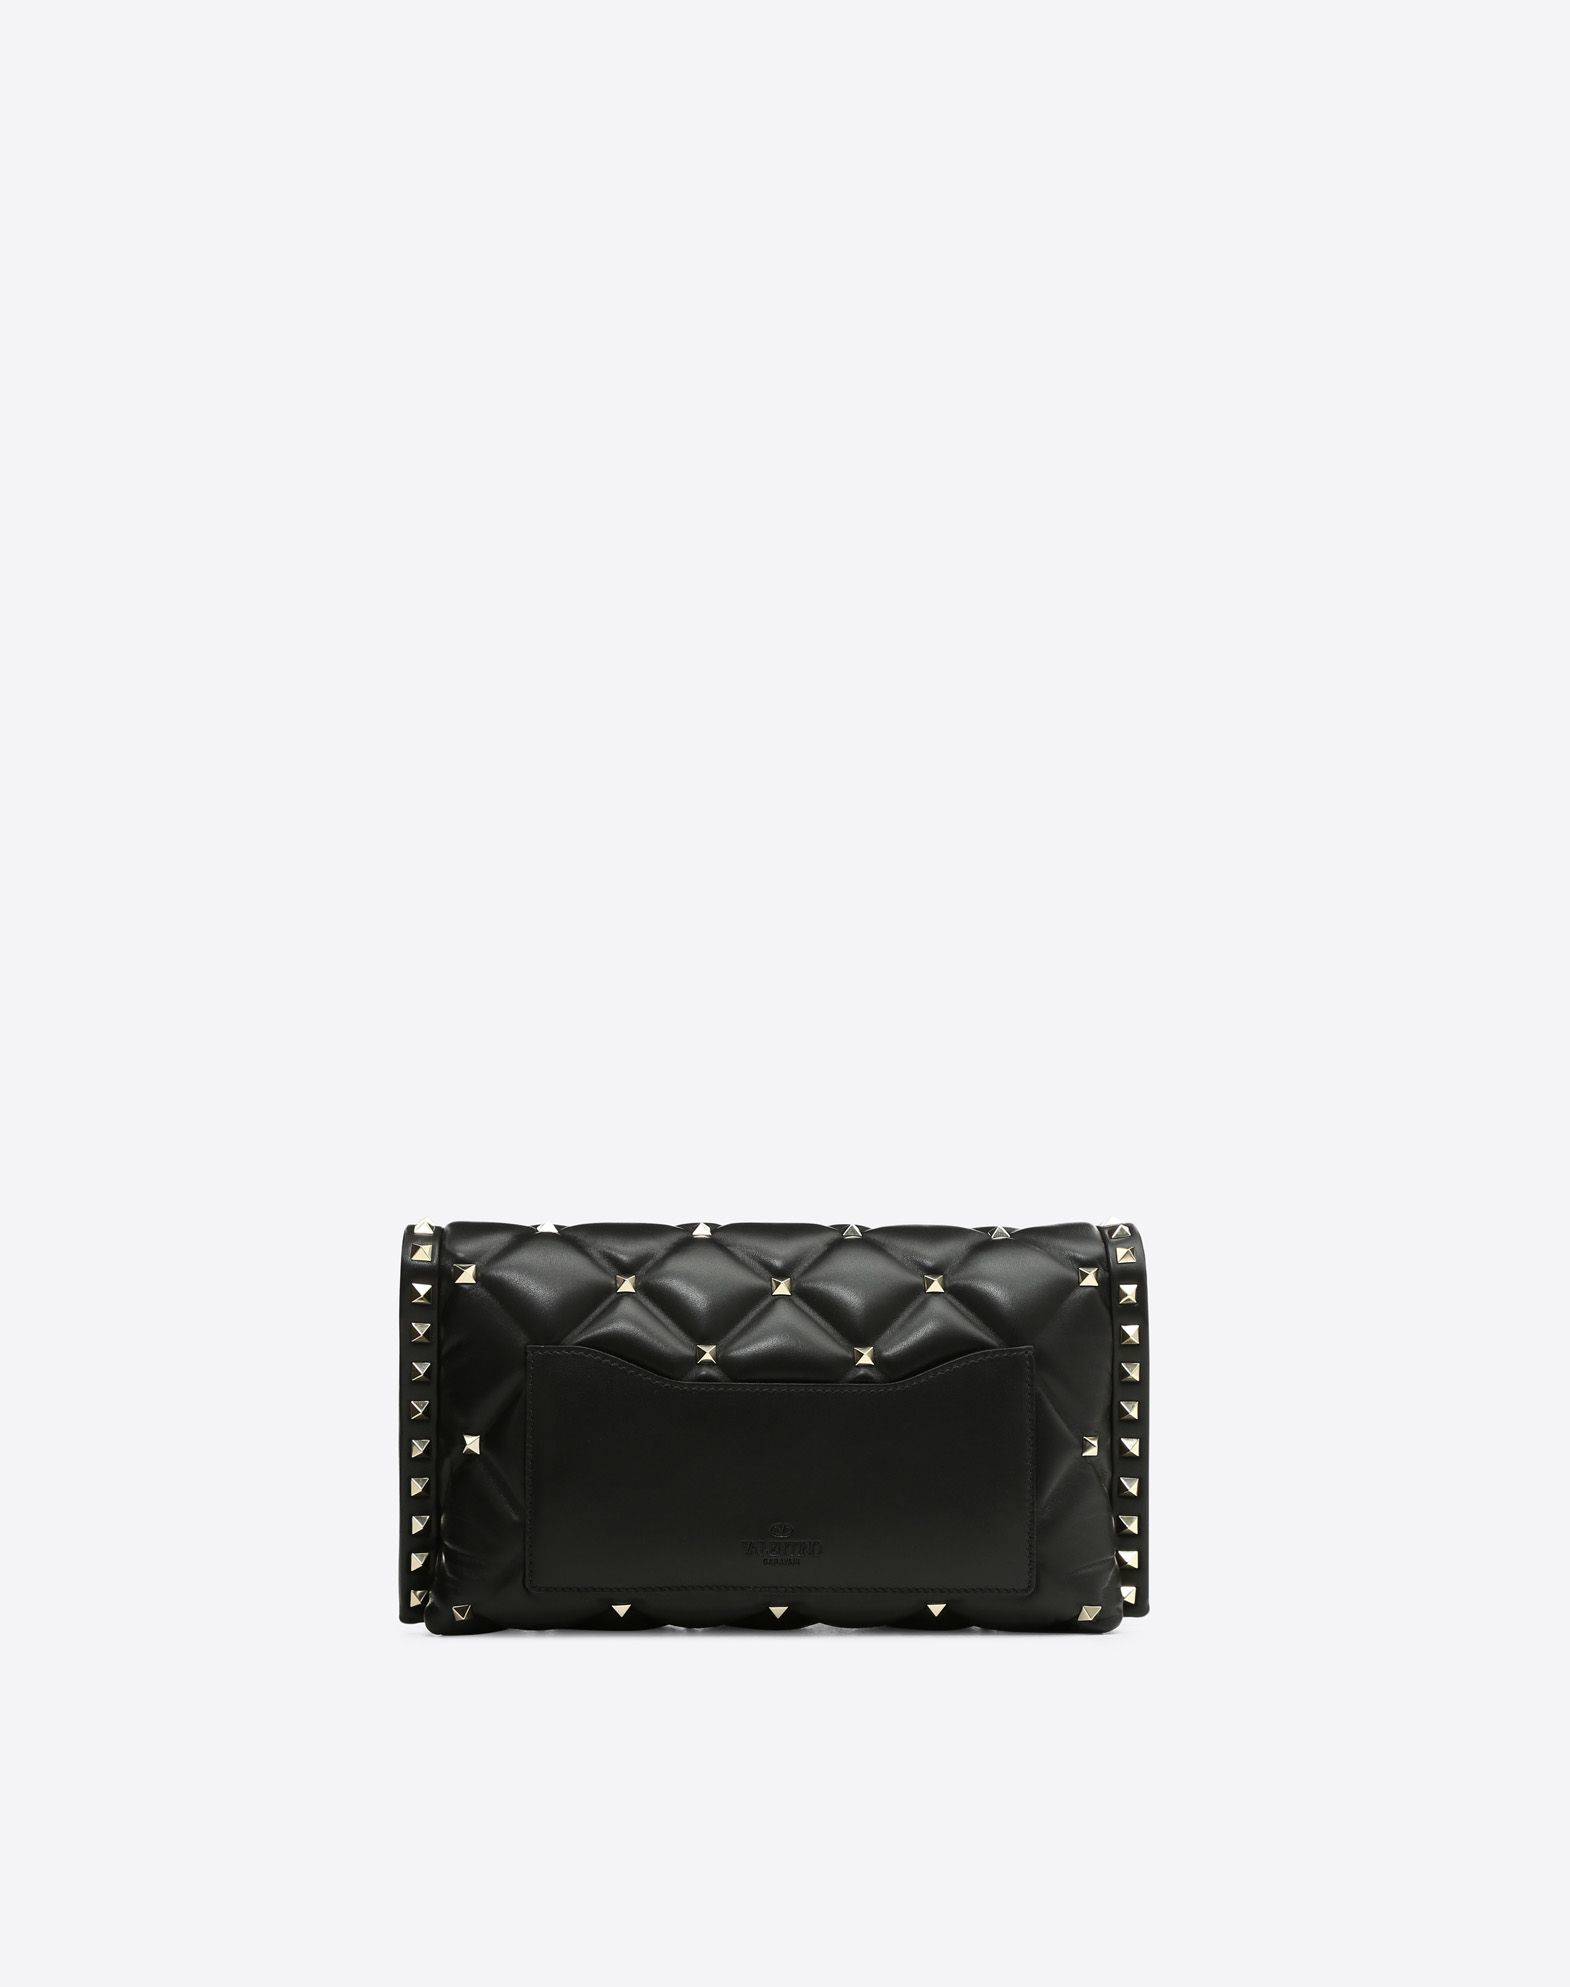 VALENTINO GARAVANI Candystud Cross-body Bag CROSS BODY BAG D d